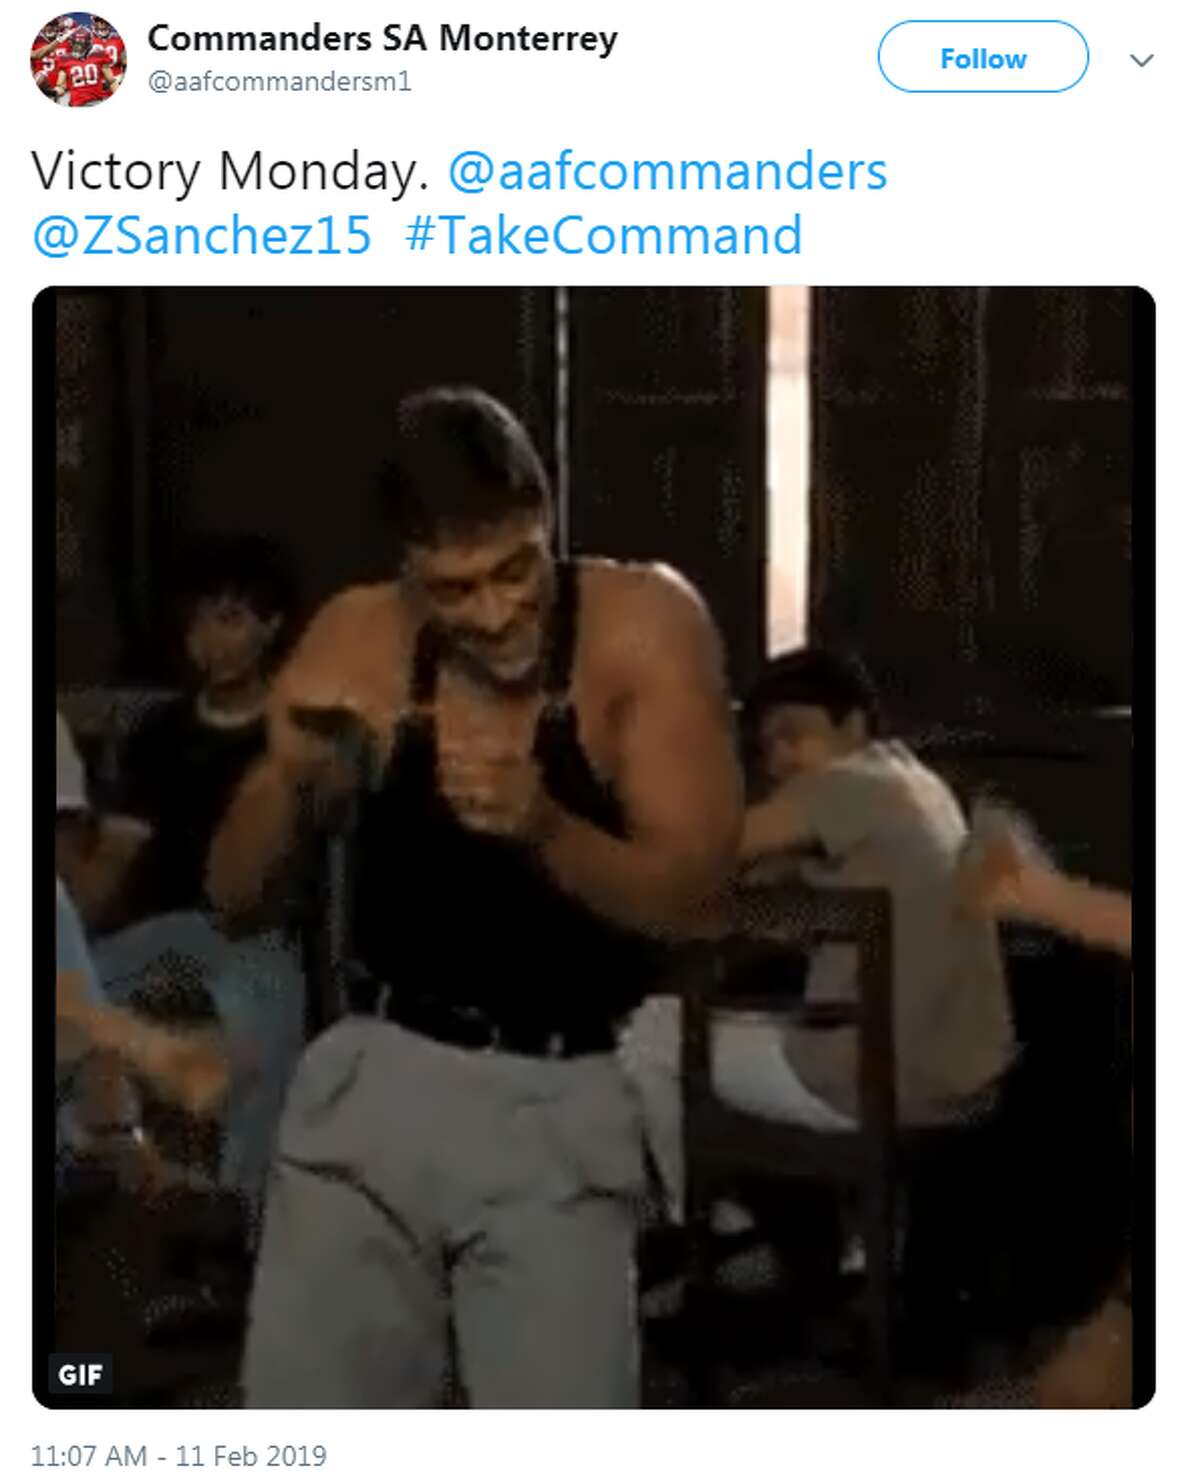 @aafcommandersm1: Victory Monday. @aafcommanders @ZSanchez15  #TakeCommand